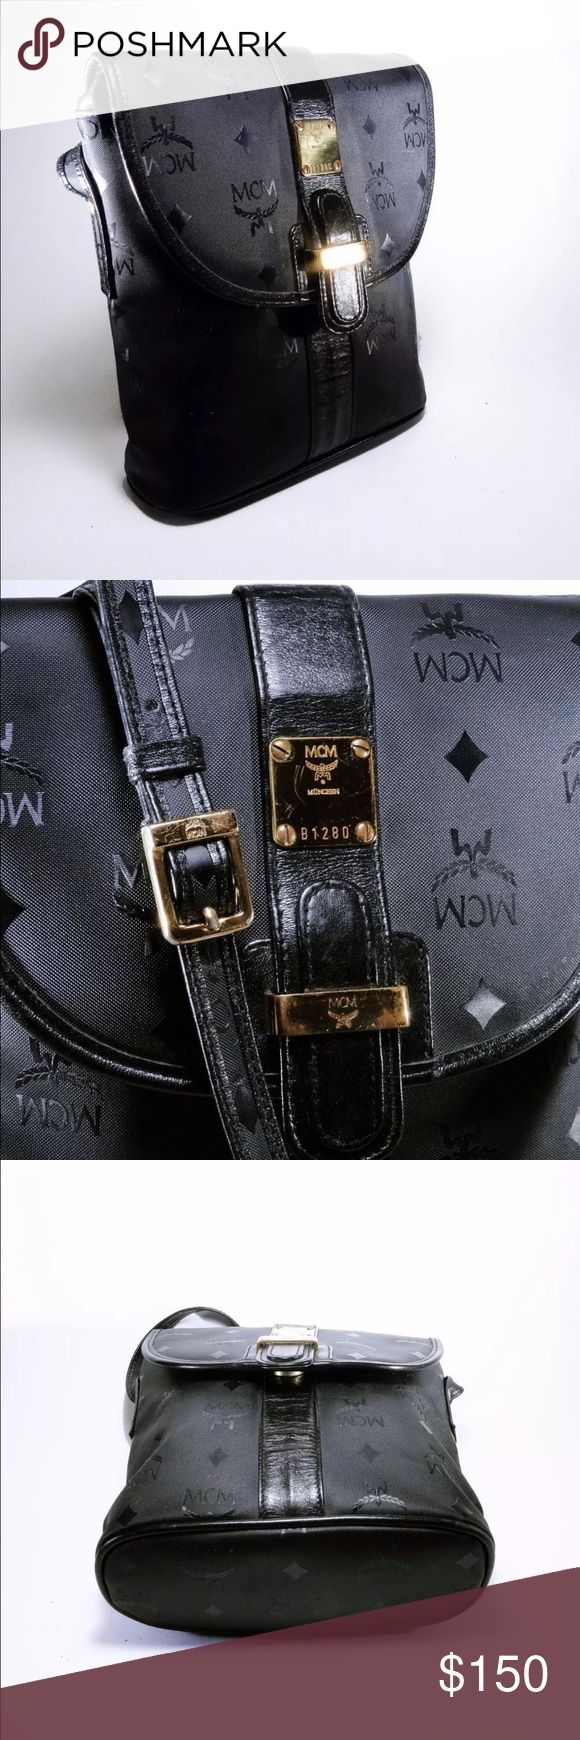 MCM cross body bag Beautiful vintage bag by MCM. Some peeling on the leather inside, but it's all black and smooth so you don't really see it. Otherwise it's in very good condition considering it's age (1989). PRICE IS FIRM!! MCM Bags Crossbody Bags